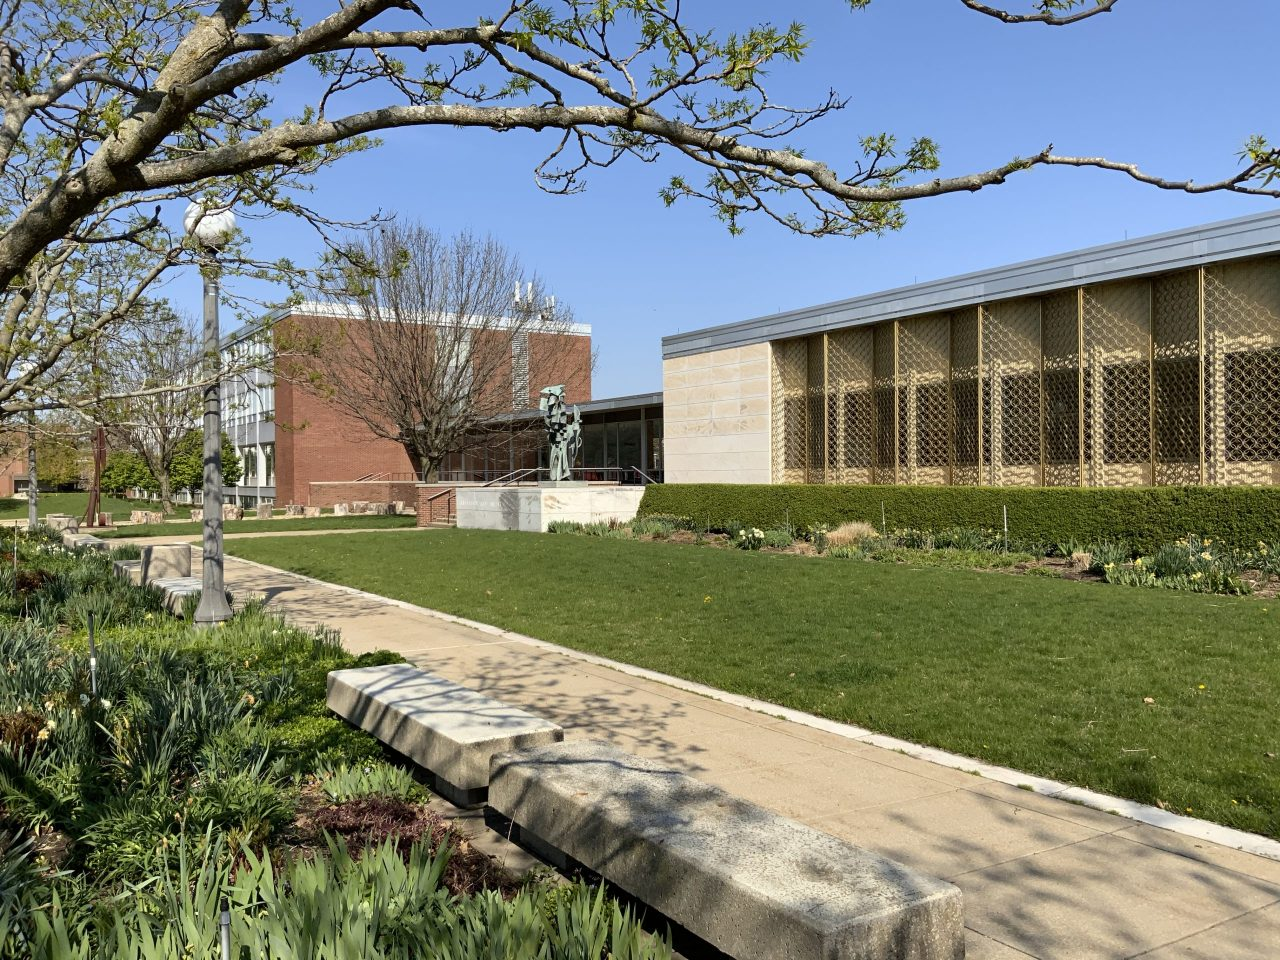 Photo of the A&D Buidling on a sunny spring day